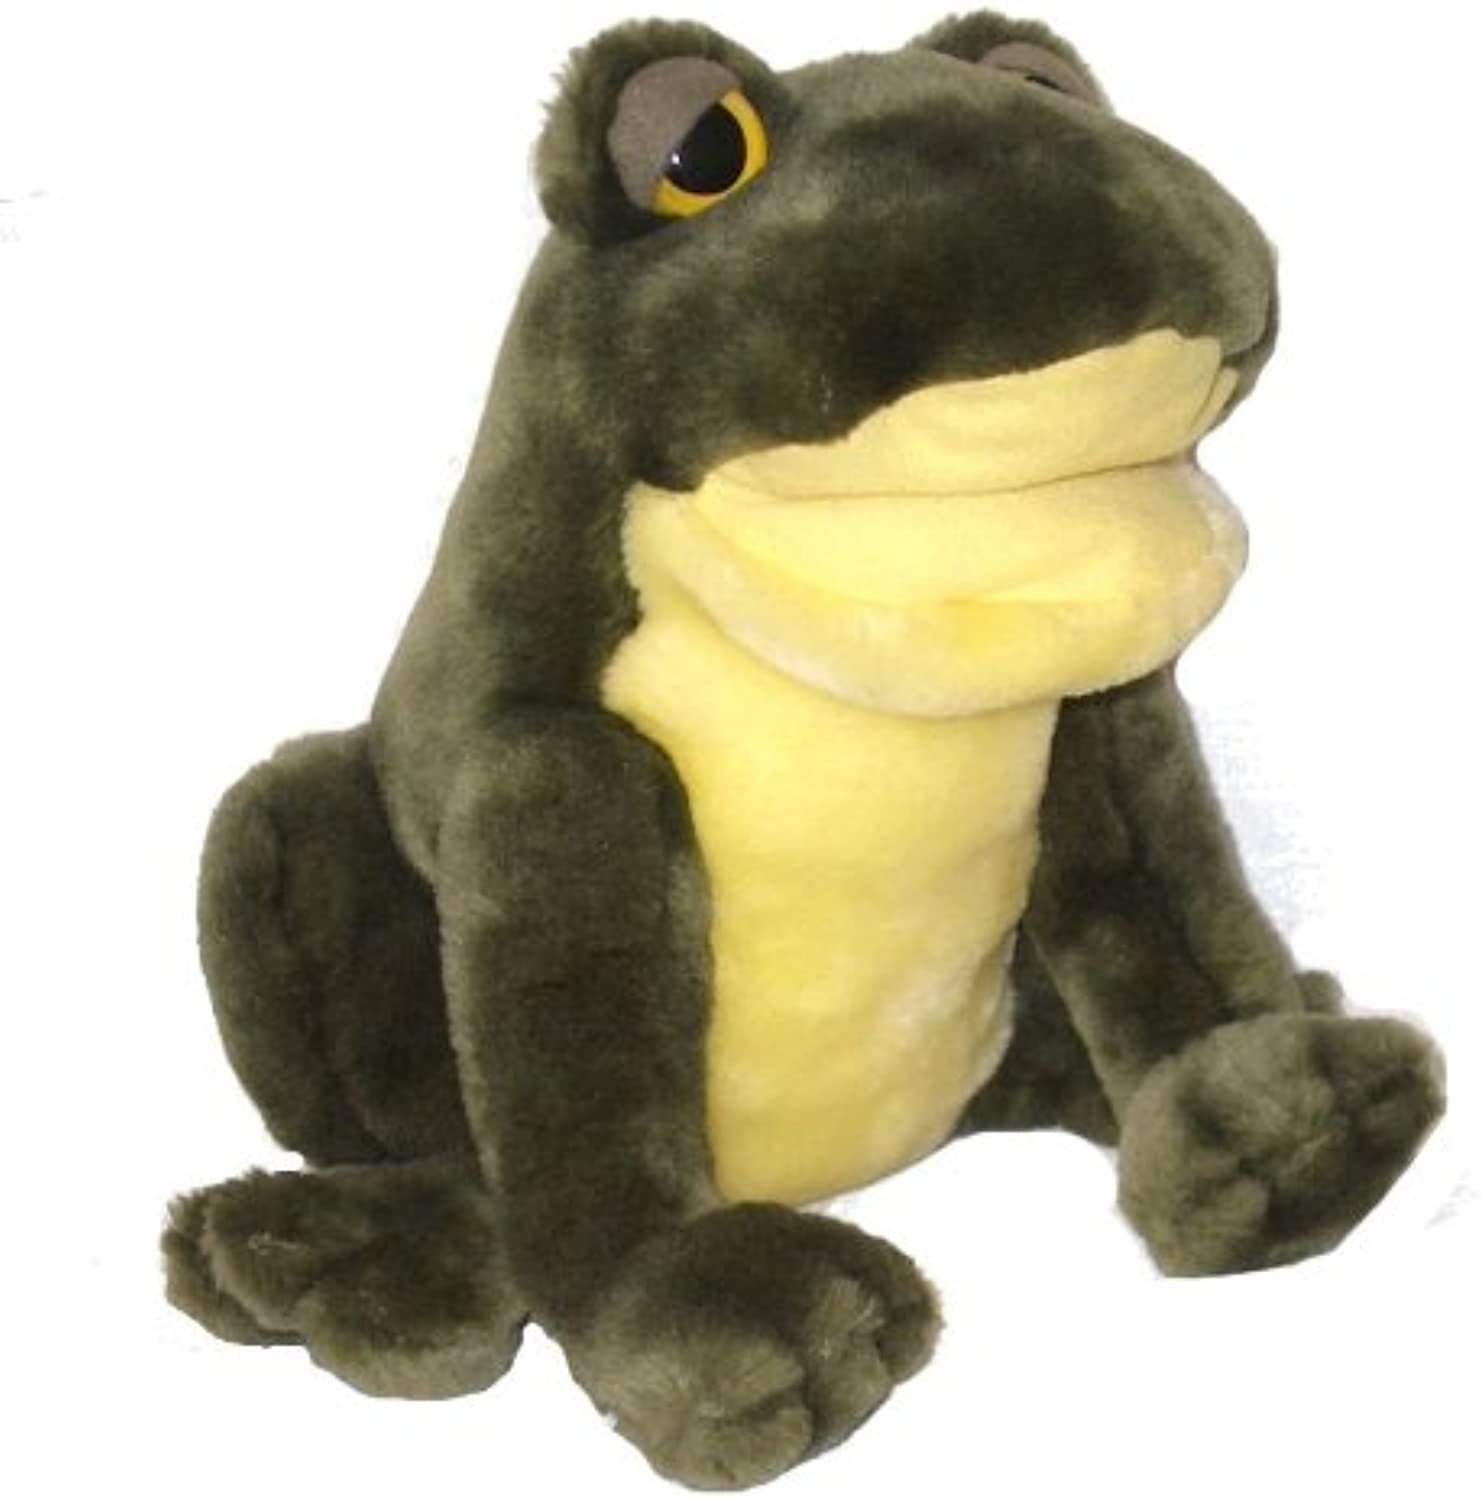 Rudy the Ribbitting Frog Puppet with Sound